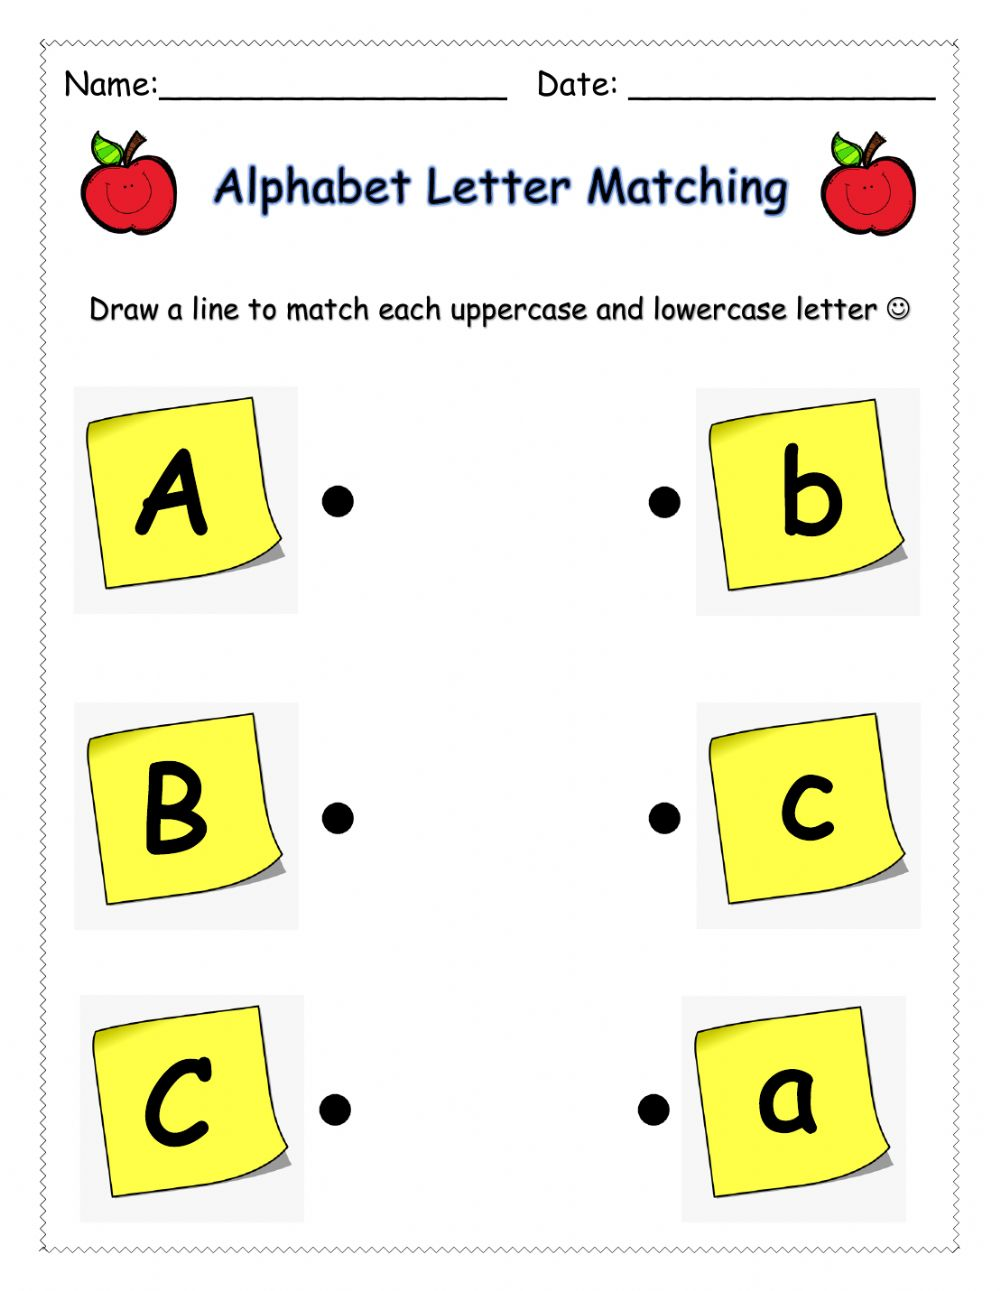 hight resolution of Letter Matching (ABC) worksheet